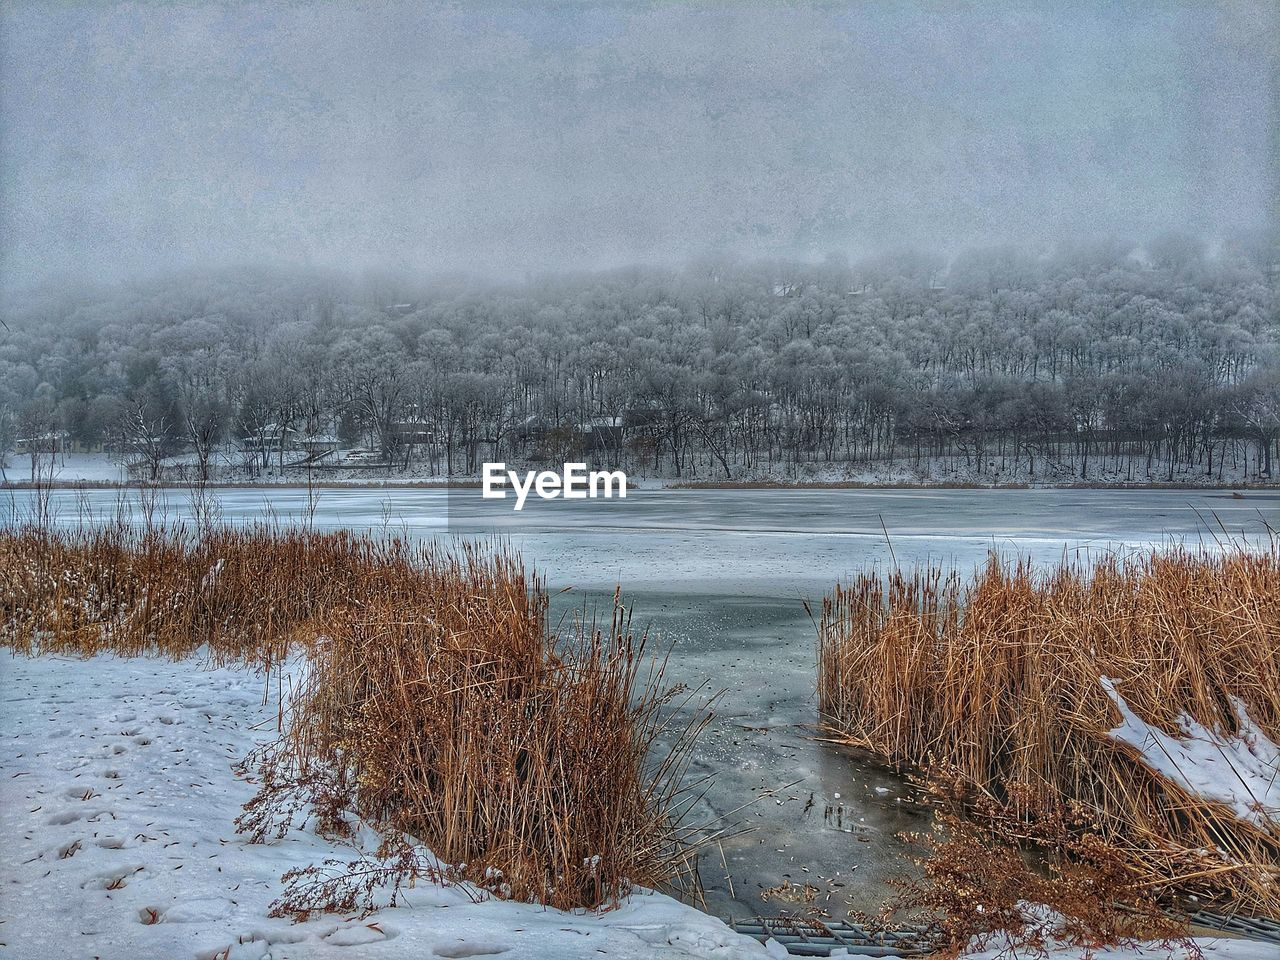 winter, cold temperature, water, tranquility, snow, tranquil scene, beauty in nature, plant, nature, scenics - nature, lake, no people, tree, frozen, sky, day, non-urban scene, land, outdoors, ice, frozen water